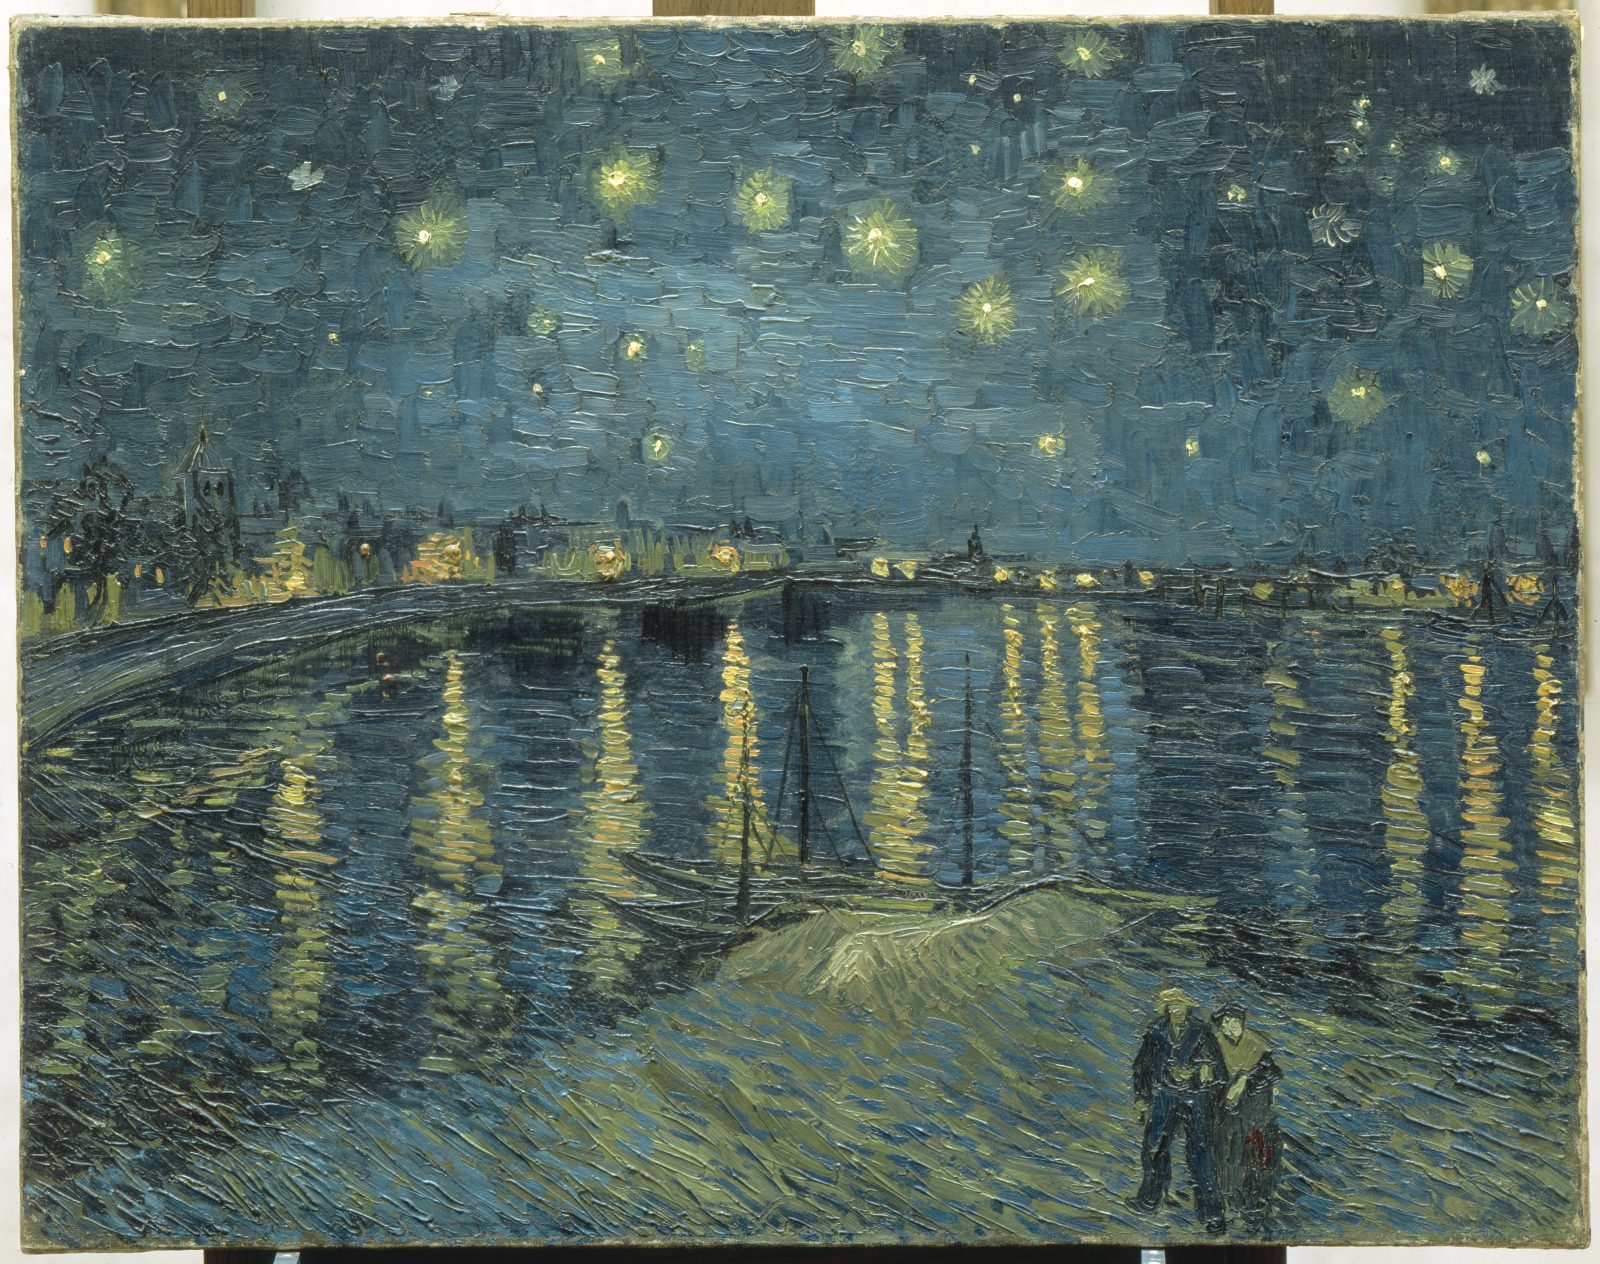 'Starry Night Over the Rhone at Arles' by Van Gogh is one of the pieces on display at the Art Gallery of Ontario in Toronto (Image courtesy of Art Gallery of Ontario)